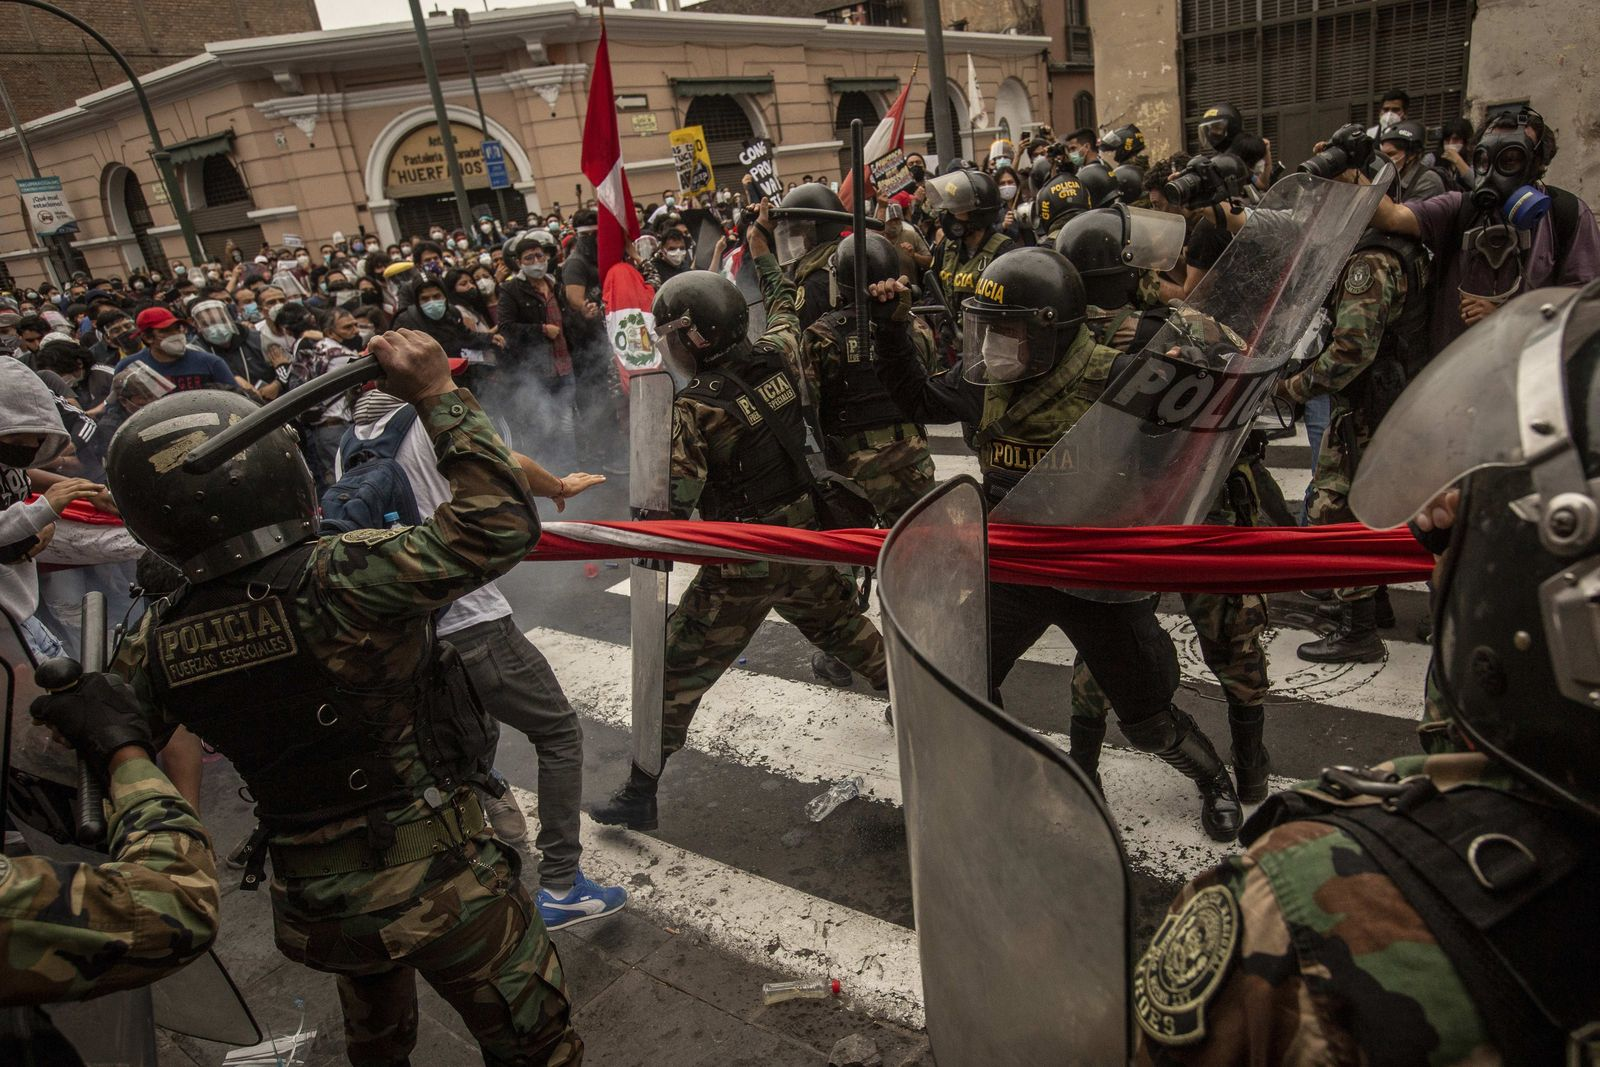 Day of protests in Lima against the new President of Peru and the departure of Vizcarra - 10 Nov 2020